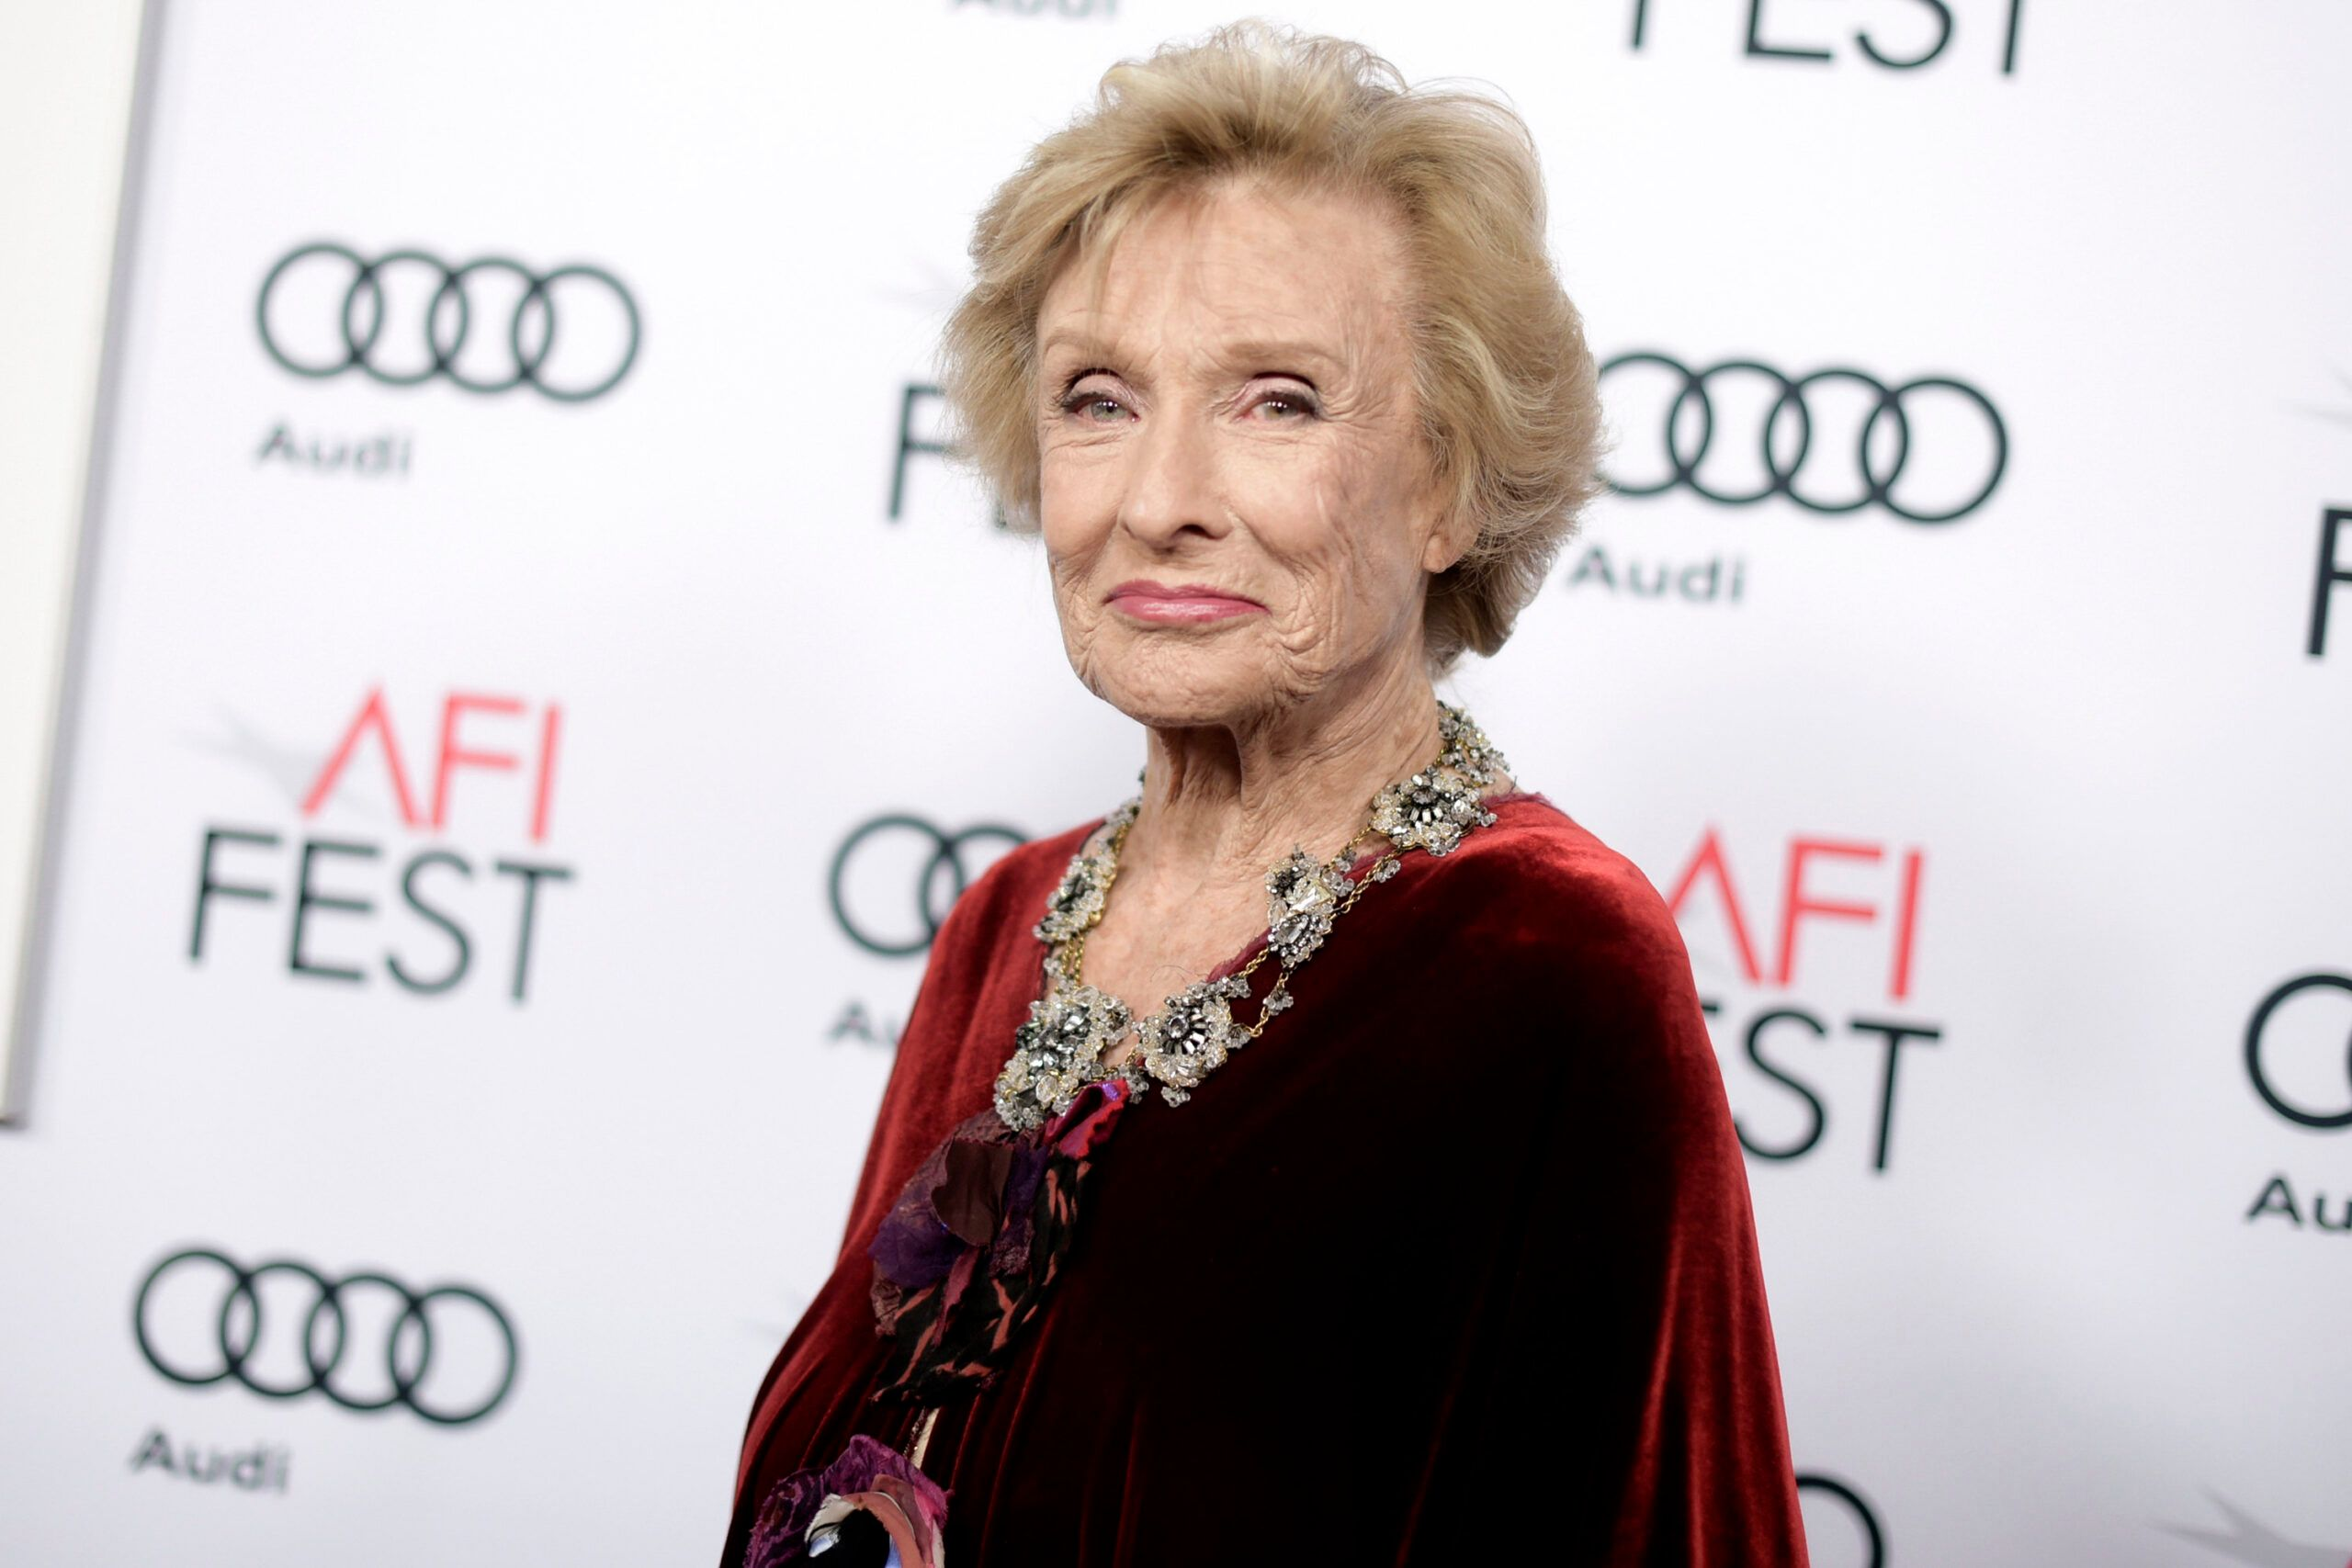 Mary Tyler Moore Show Star Cloris Leachman Has Passed At 94 - Fame10